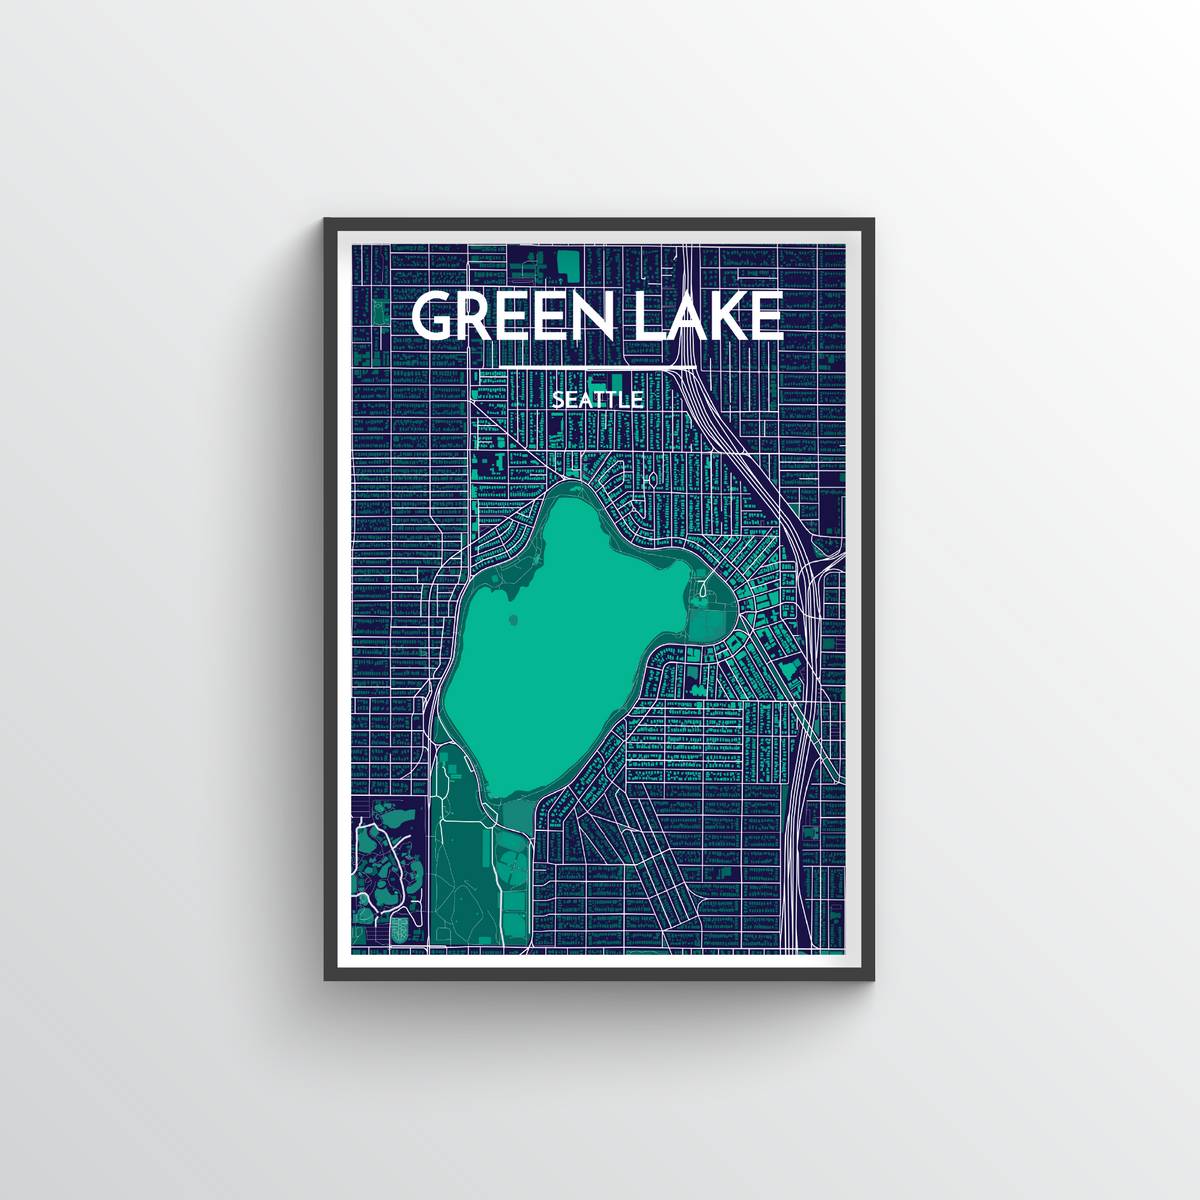 Seattle Green Lake Neighbourhood Map Art Print - Point Two Design